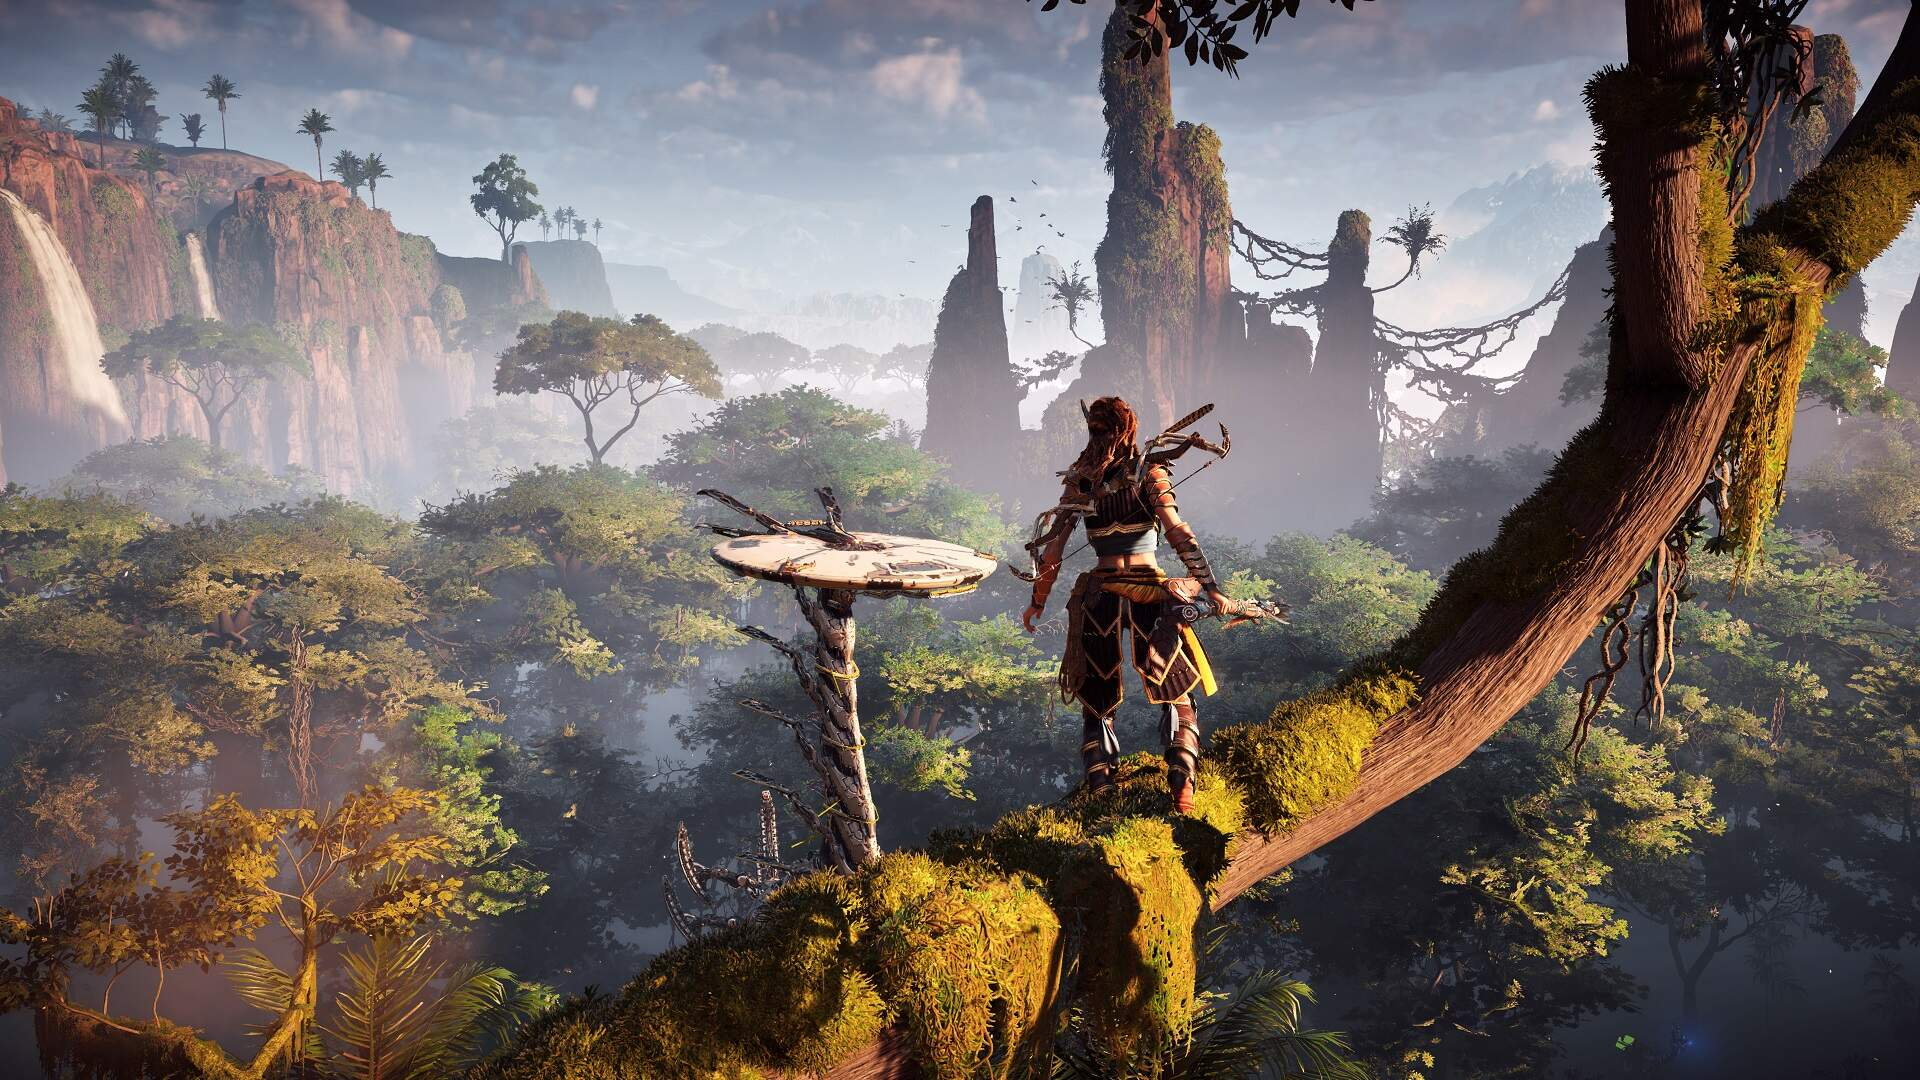 Horizon Zero Dawn Guide: Cauldron Locations and how to Conquer Them